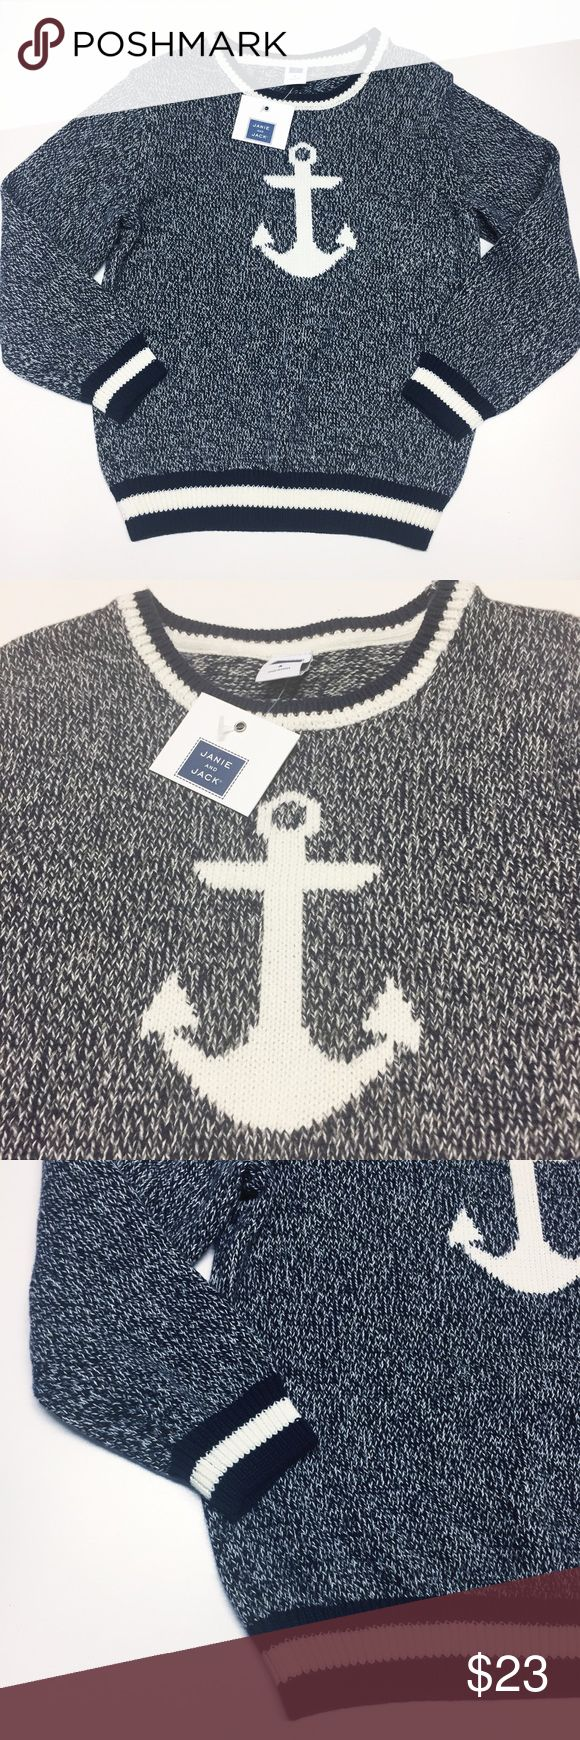 NWT Janie and Jack Anchor sweater SZ 4 Janie and Jack Sweater. Size 4. Brand new with tags. Cute Anchor design on front. Janie and Jack Shirts & Tops Sweaters